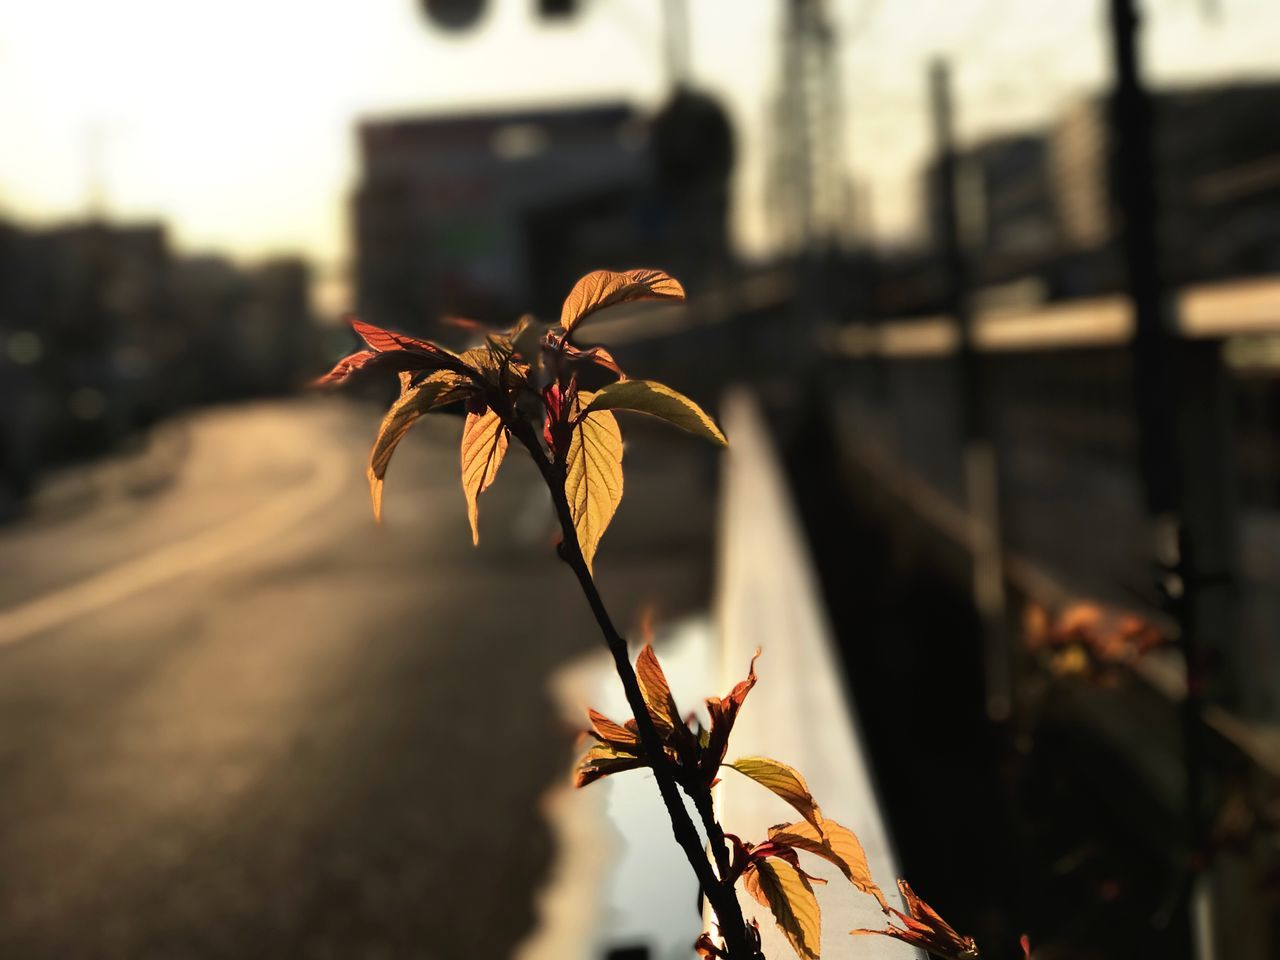 New leaves of cherry tree Focus On Foreground Beauty In Nature Growth IPhoneography Cherry Tree Leaves Sunset Sunset Silhouettes IPhone7Plus Portrait Mode